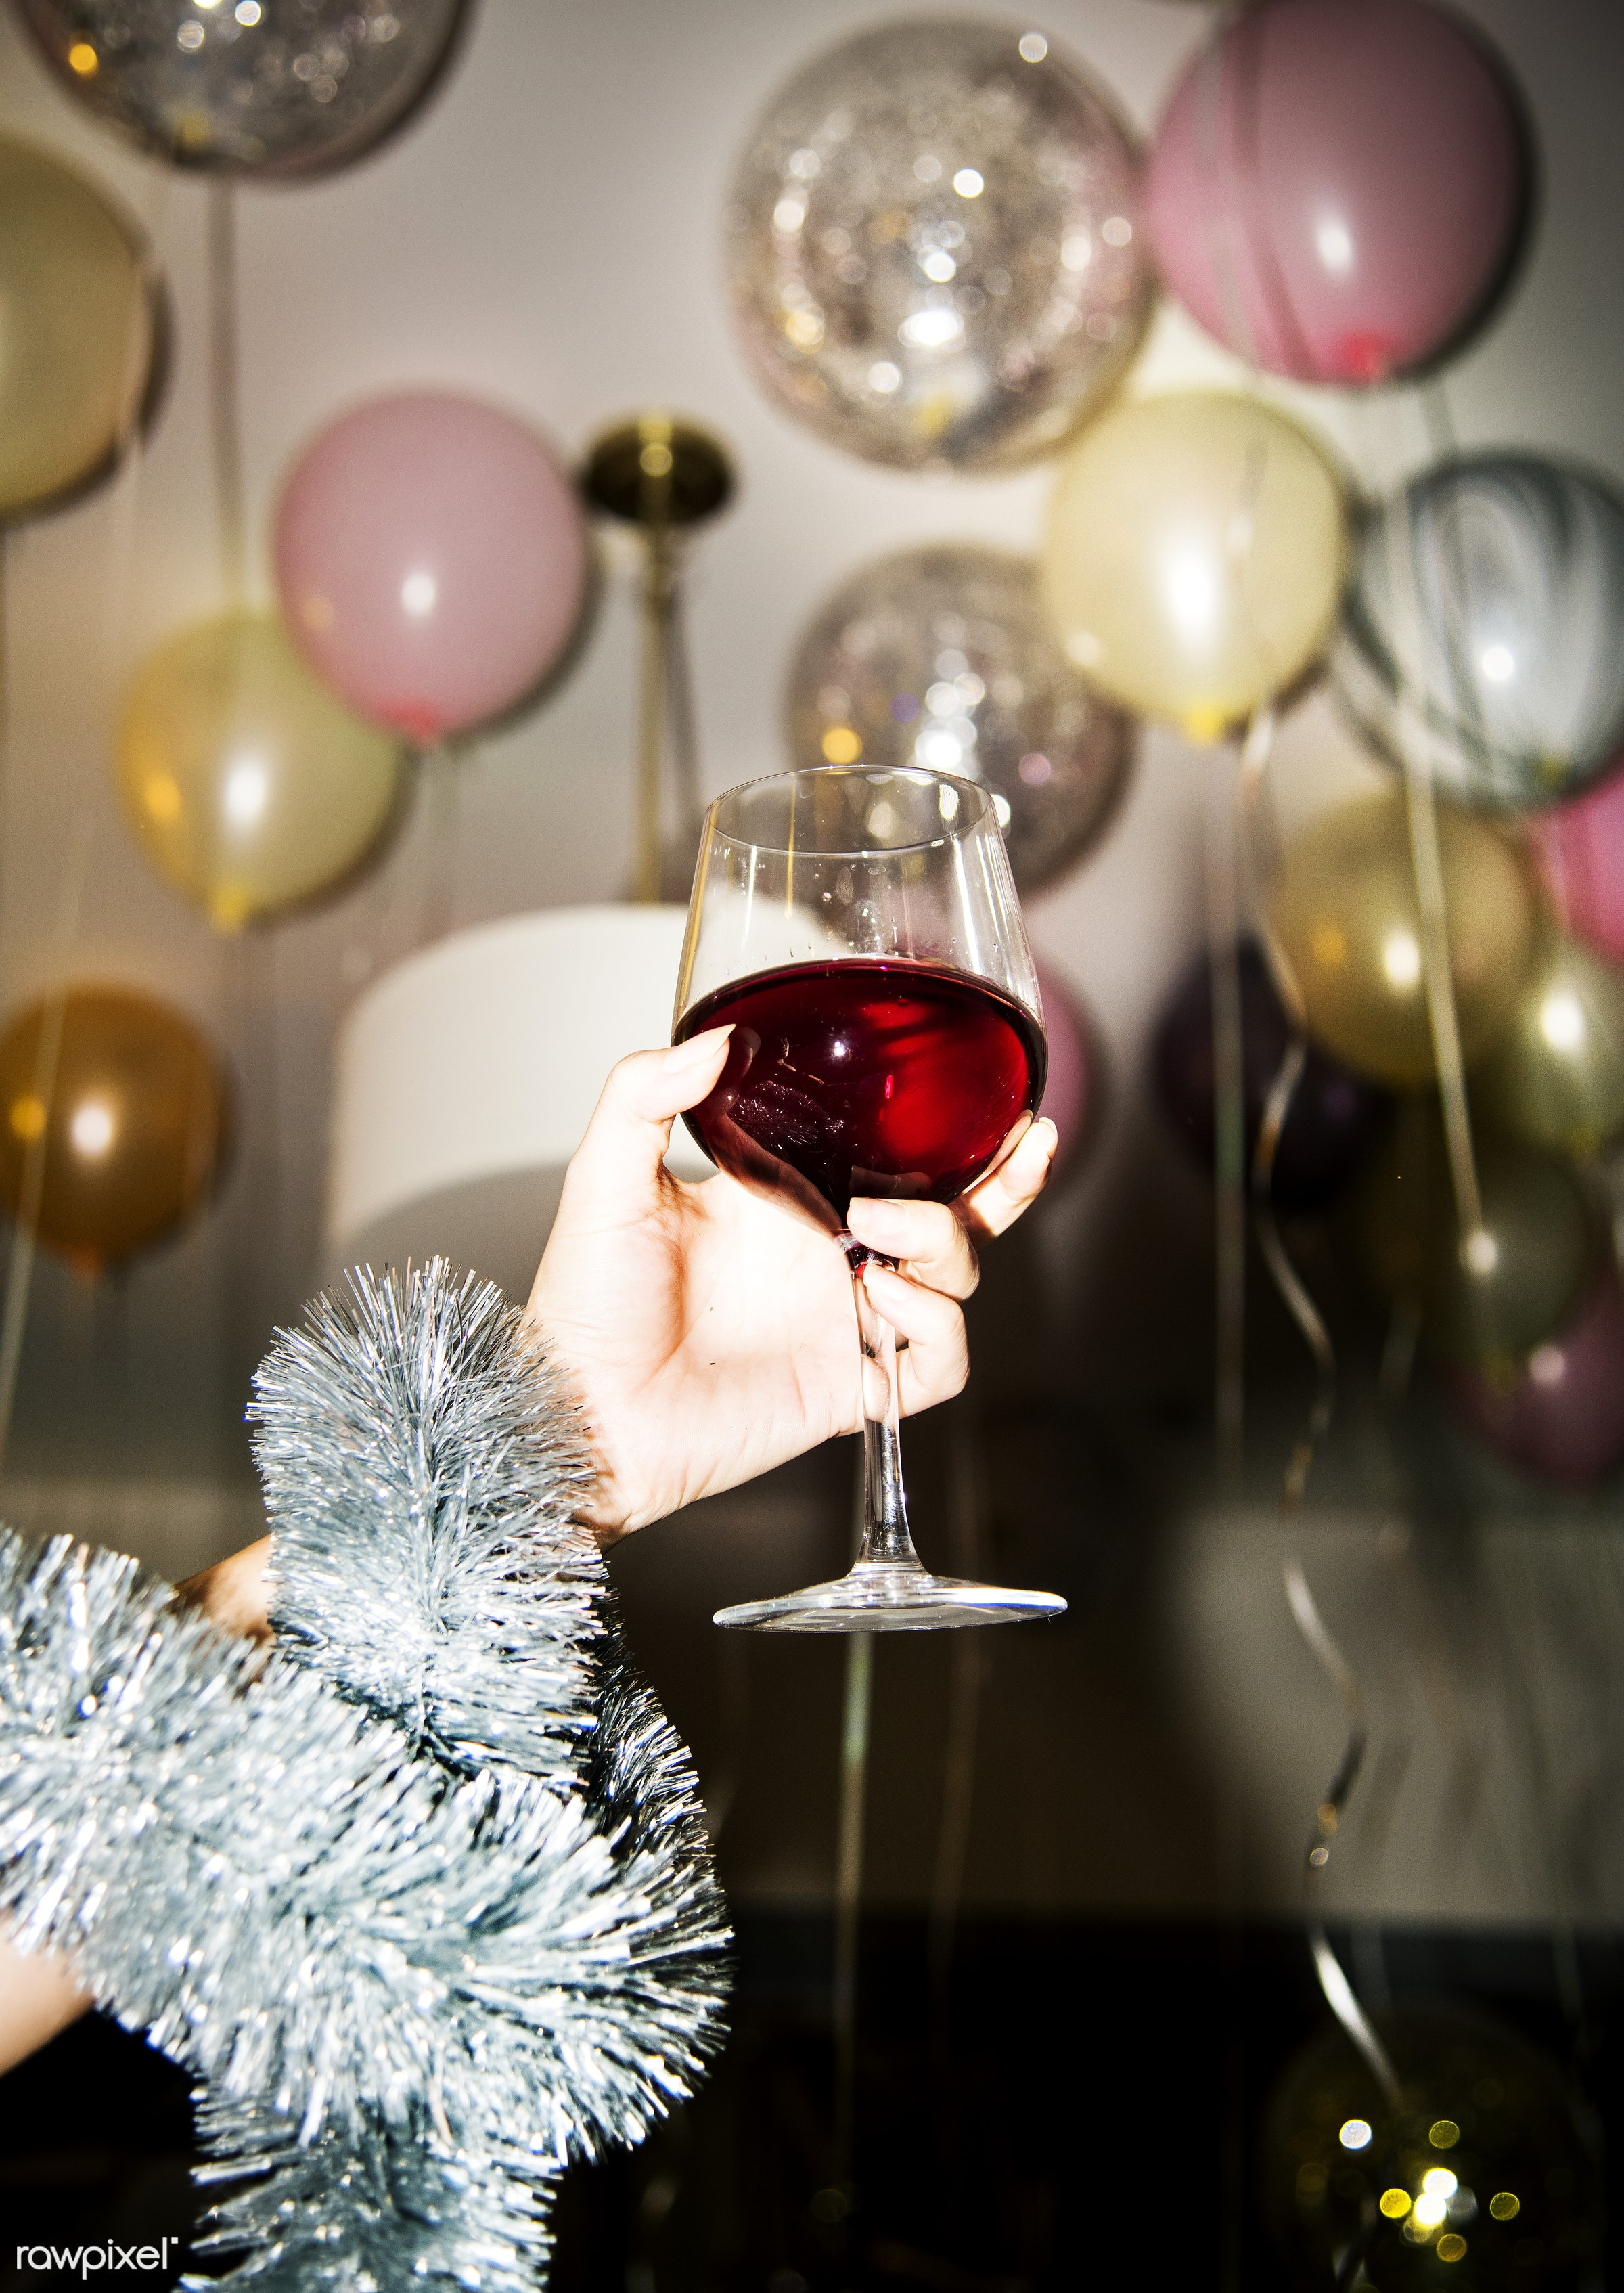 People celebrating in a party - new year, birthday, party, wine, 2018, alcohol, balloons, beverage, celebrate, celebration,...